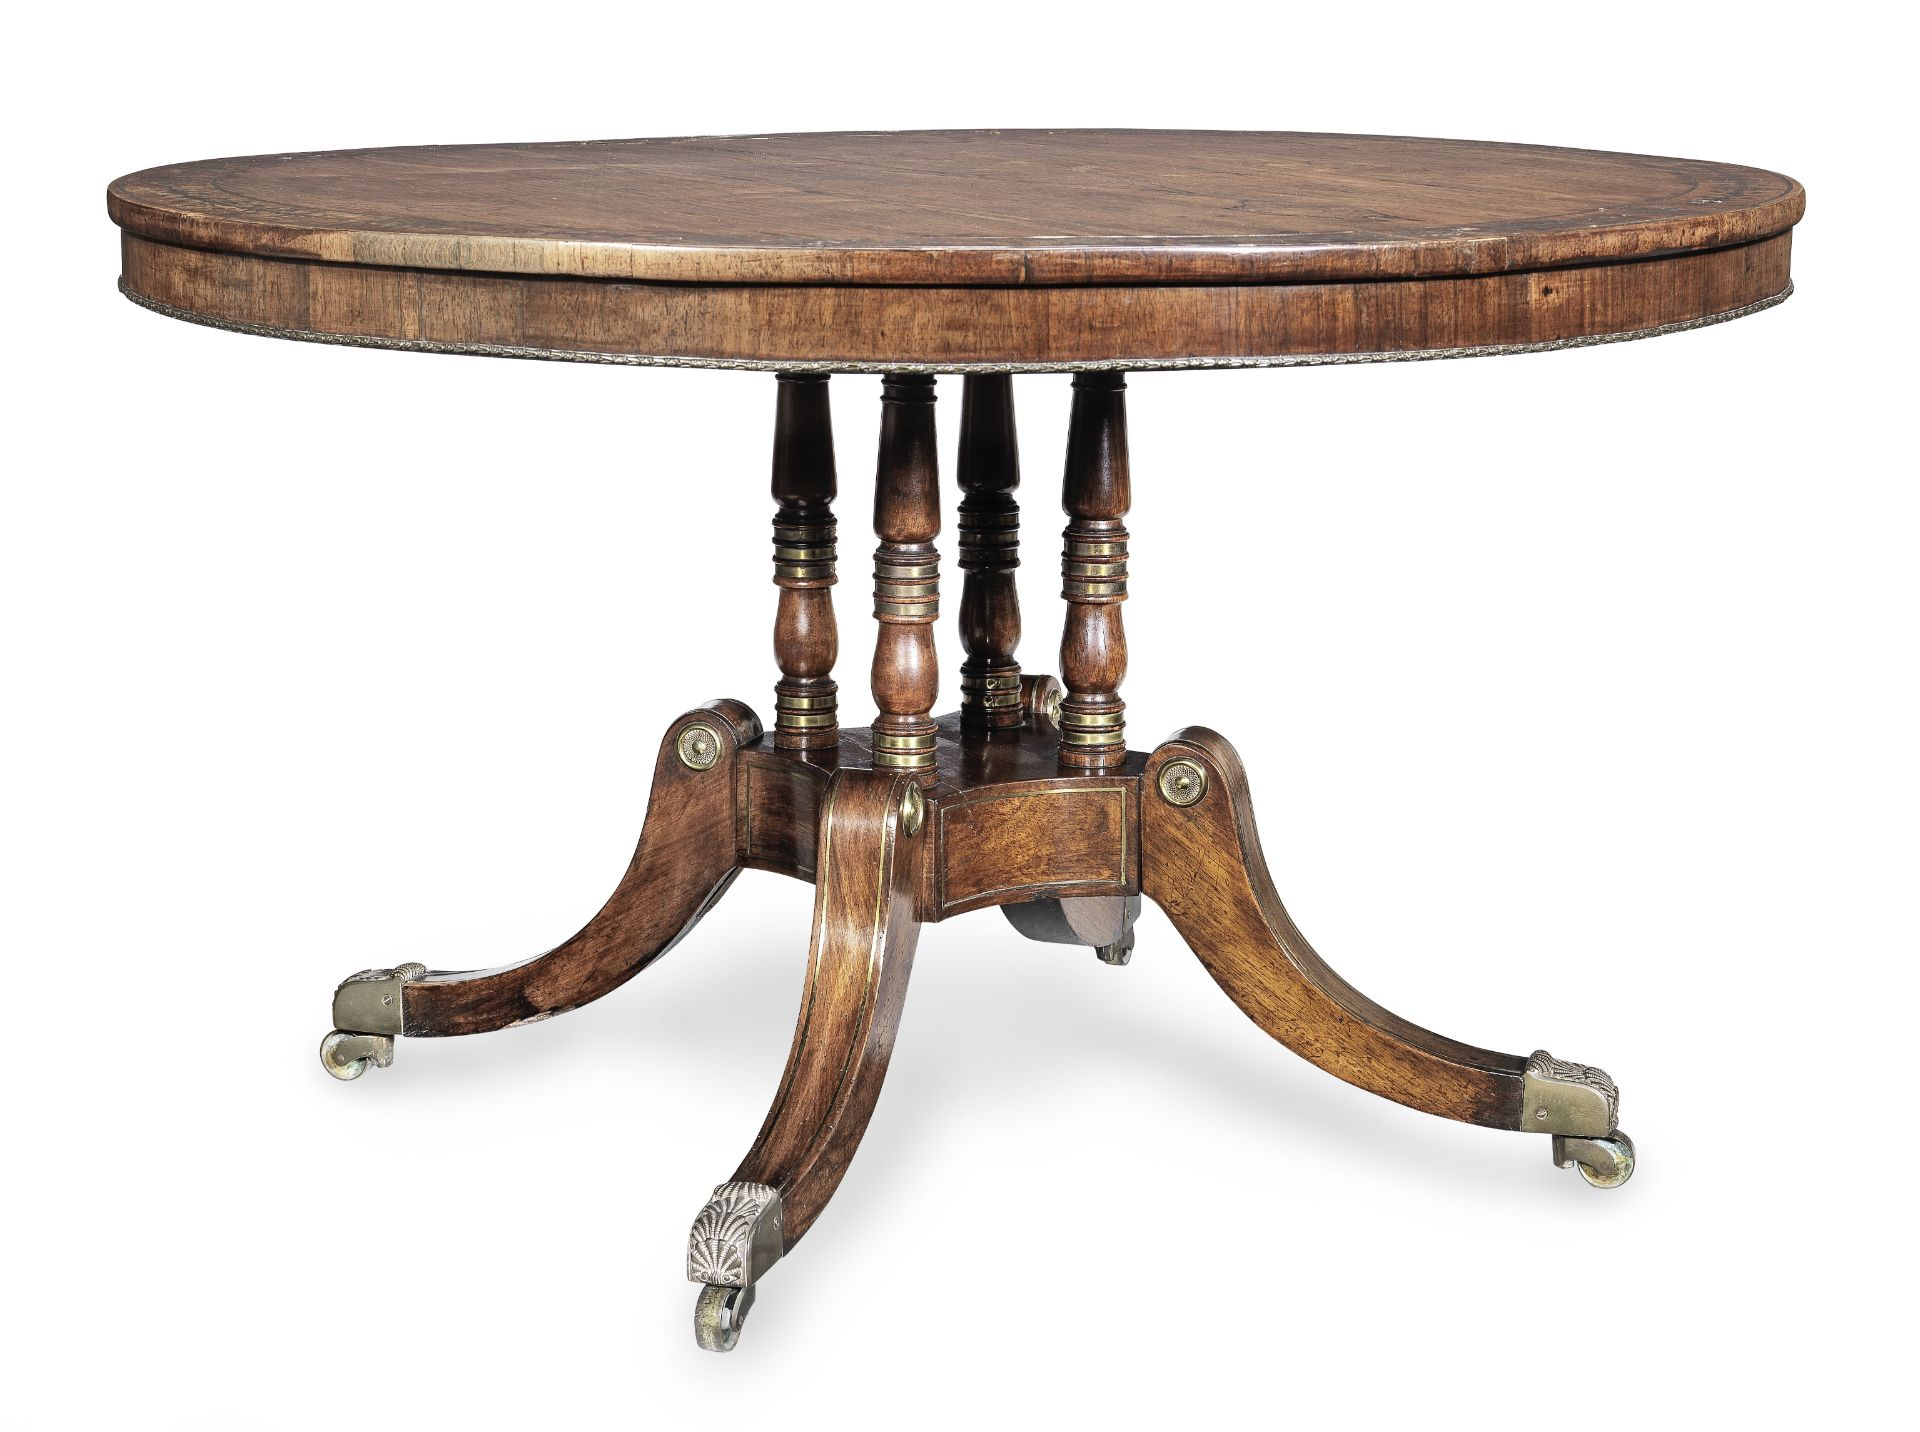 Los 109 - A Regency brass mounted and brass inlaid rosewood breakfast table